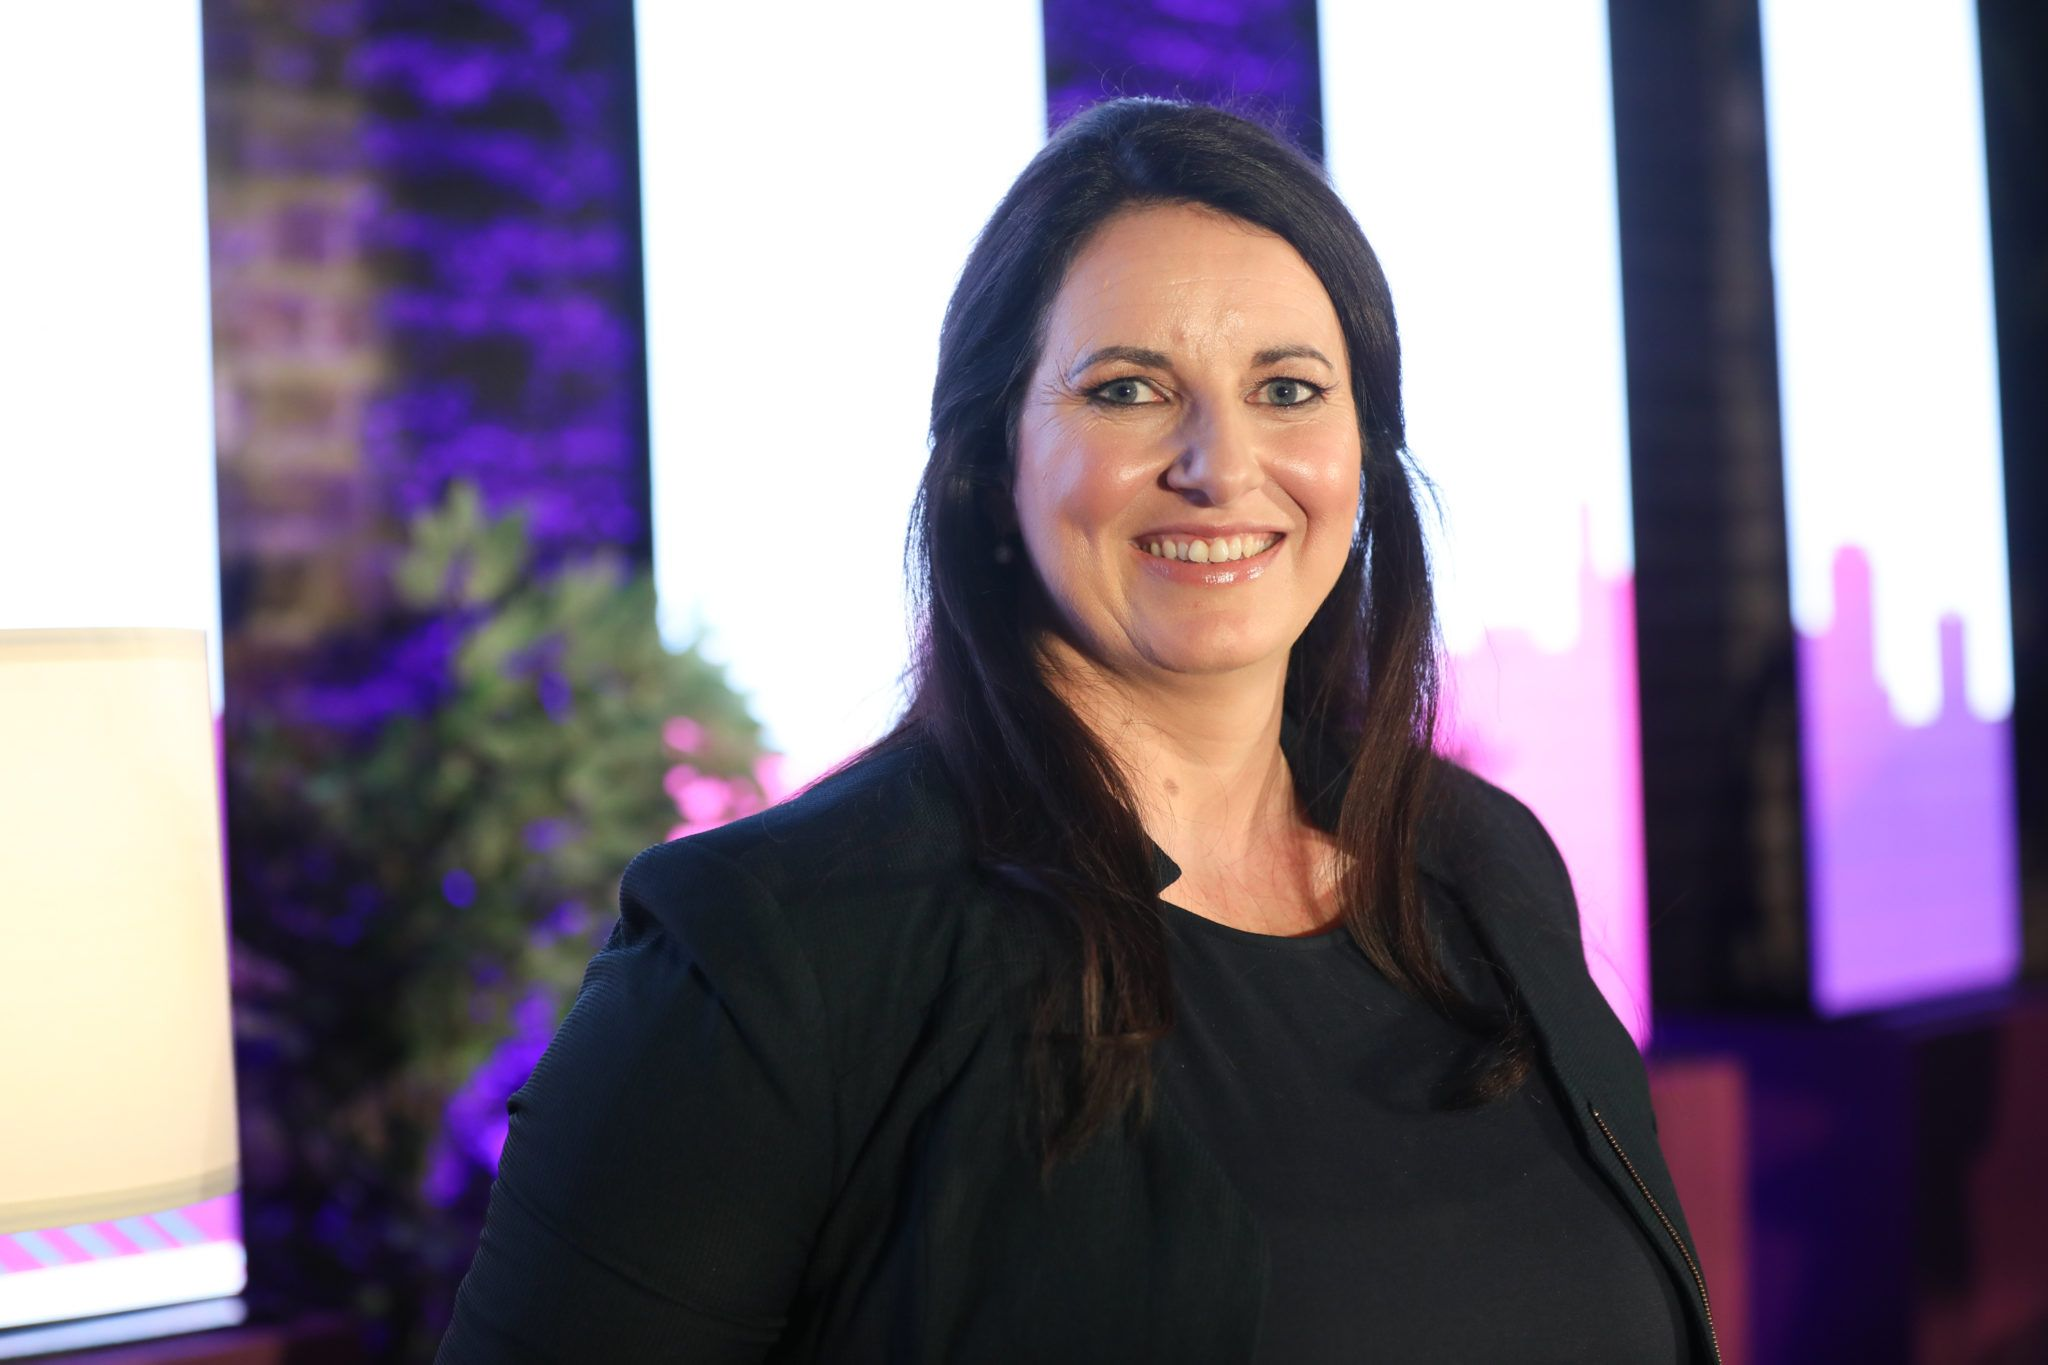 Orla Gleeson, Head of Homes for AIB Dublin North and West